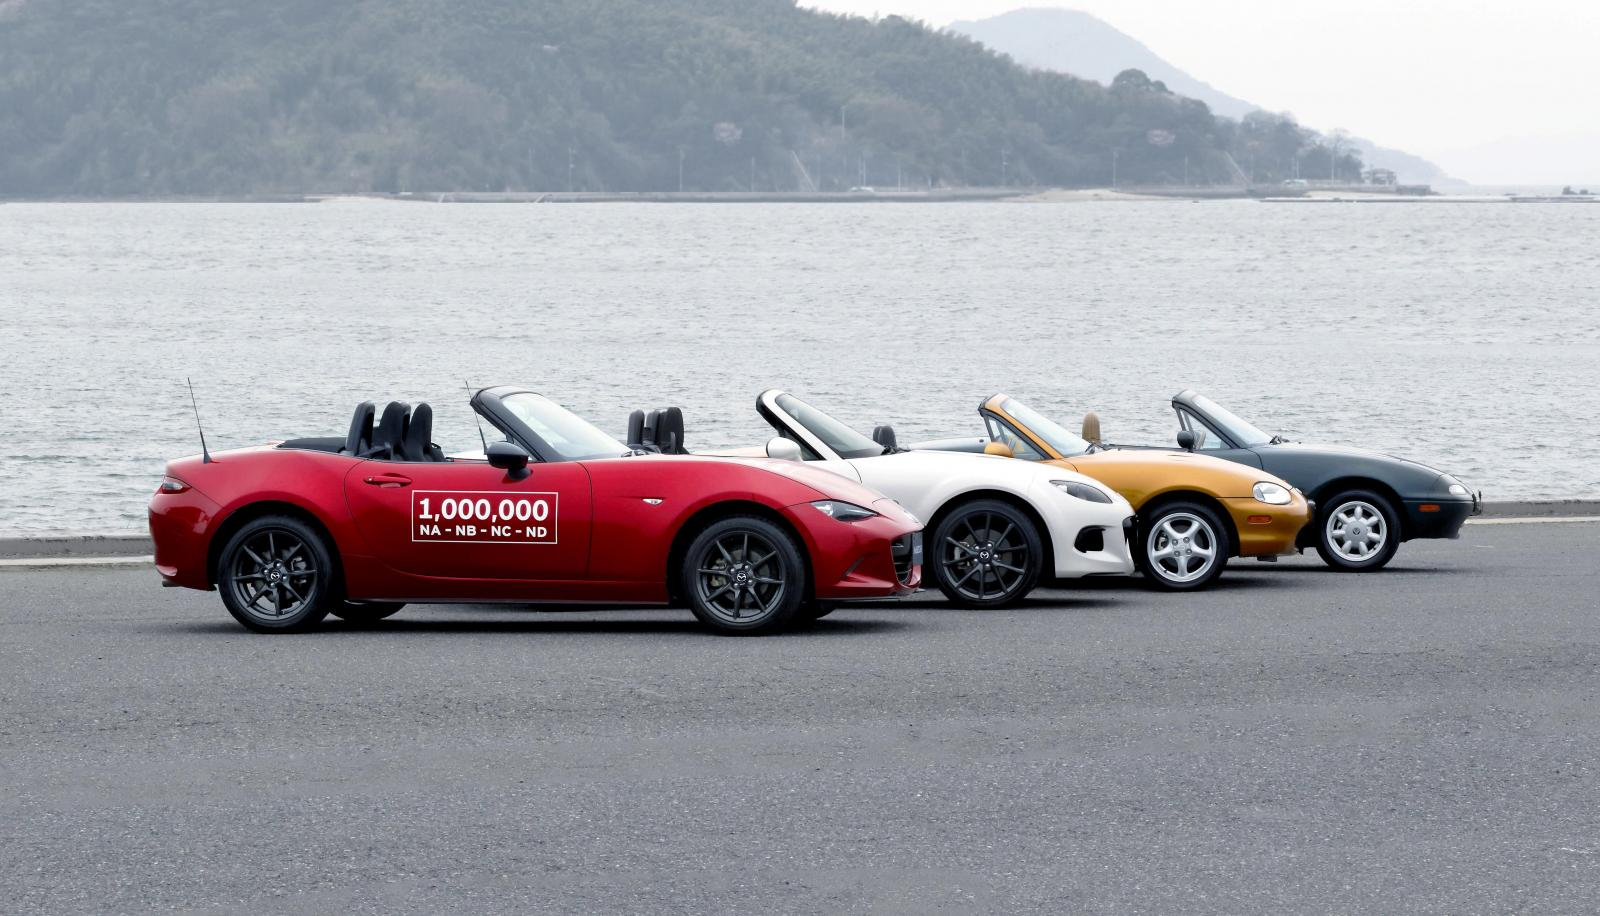 1.000.000 de Mazda MX-5 ya se han fabricado: El legendario roadster sigue batiendo récords... 1